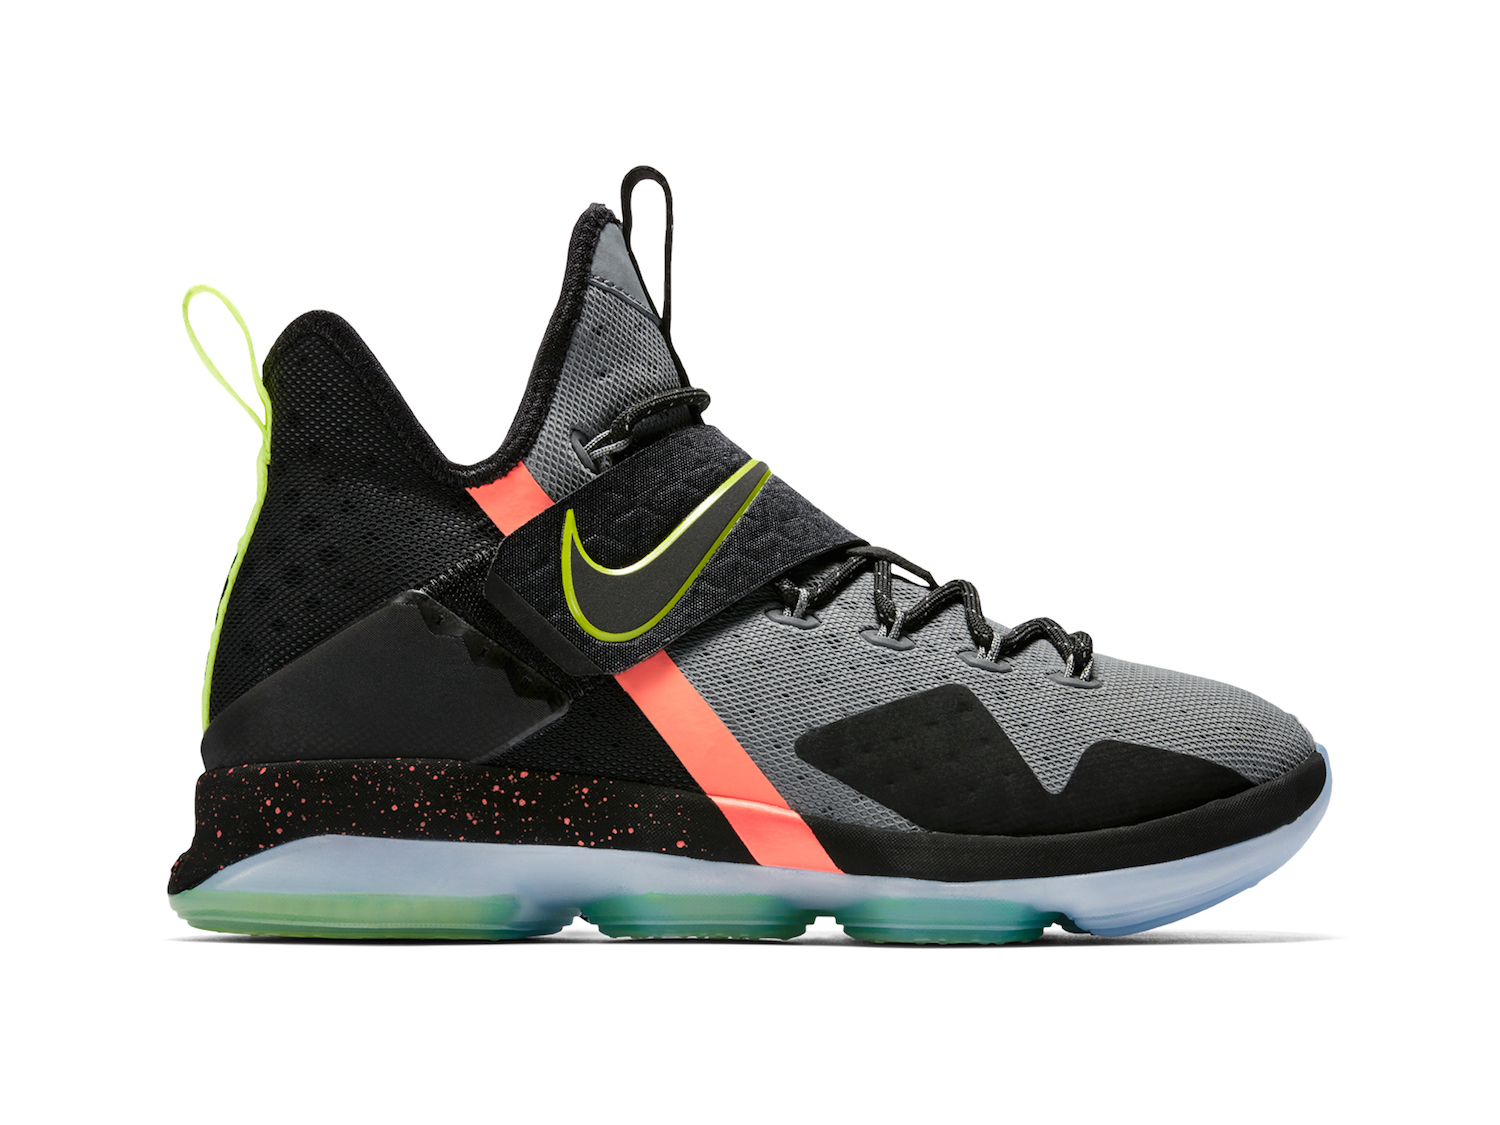 low priced 557ed 27cde StockX Launches Exclusive 'Cavs Court SPO' Featuring the AZG ...